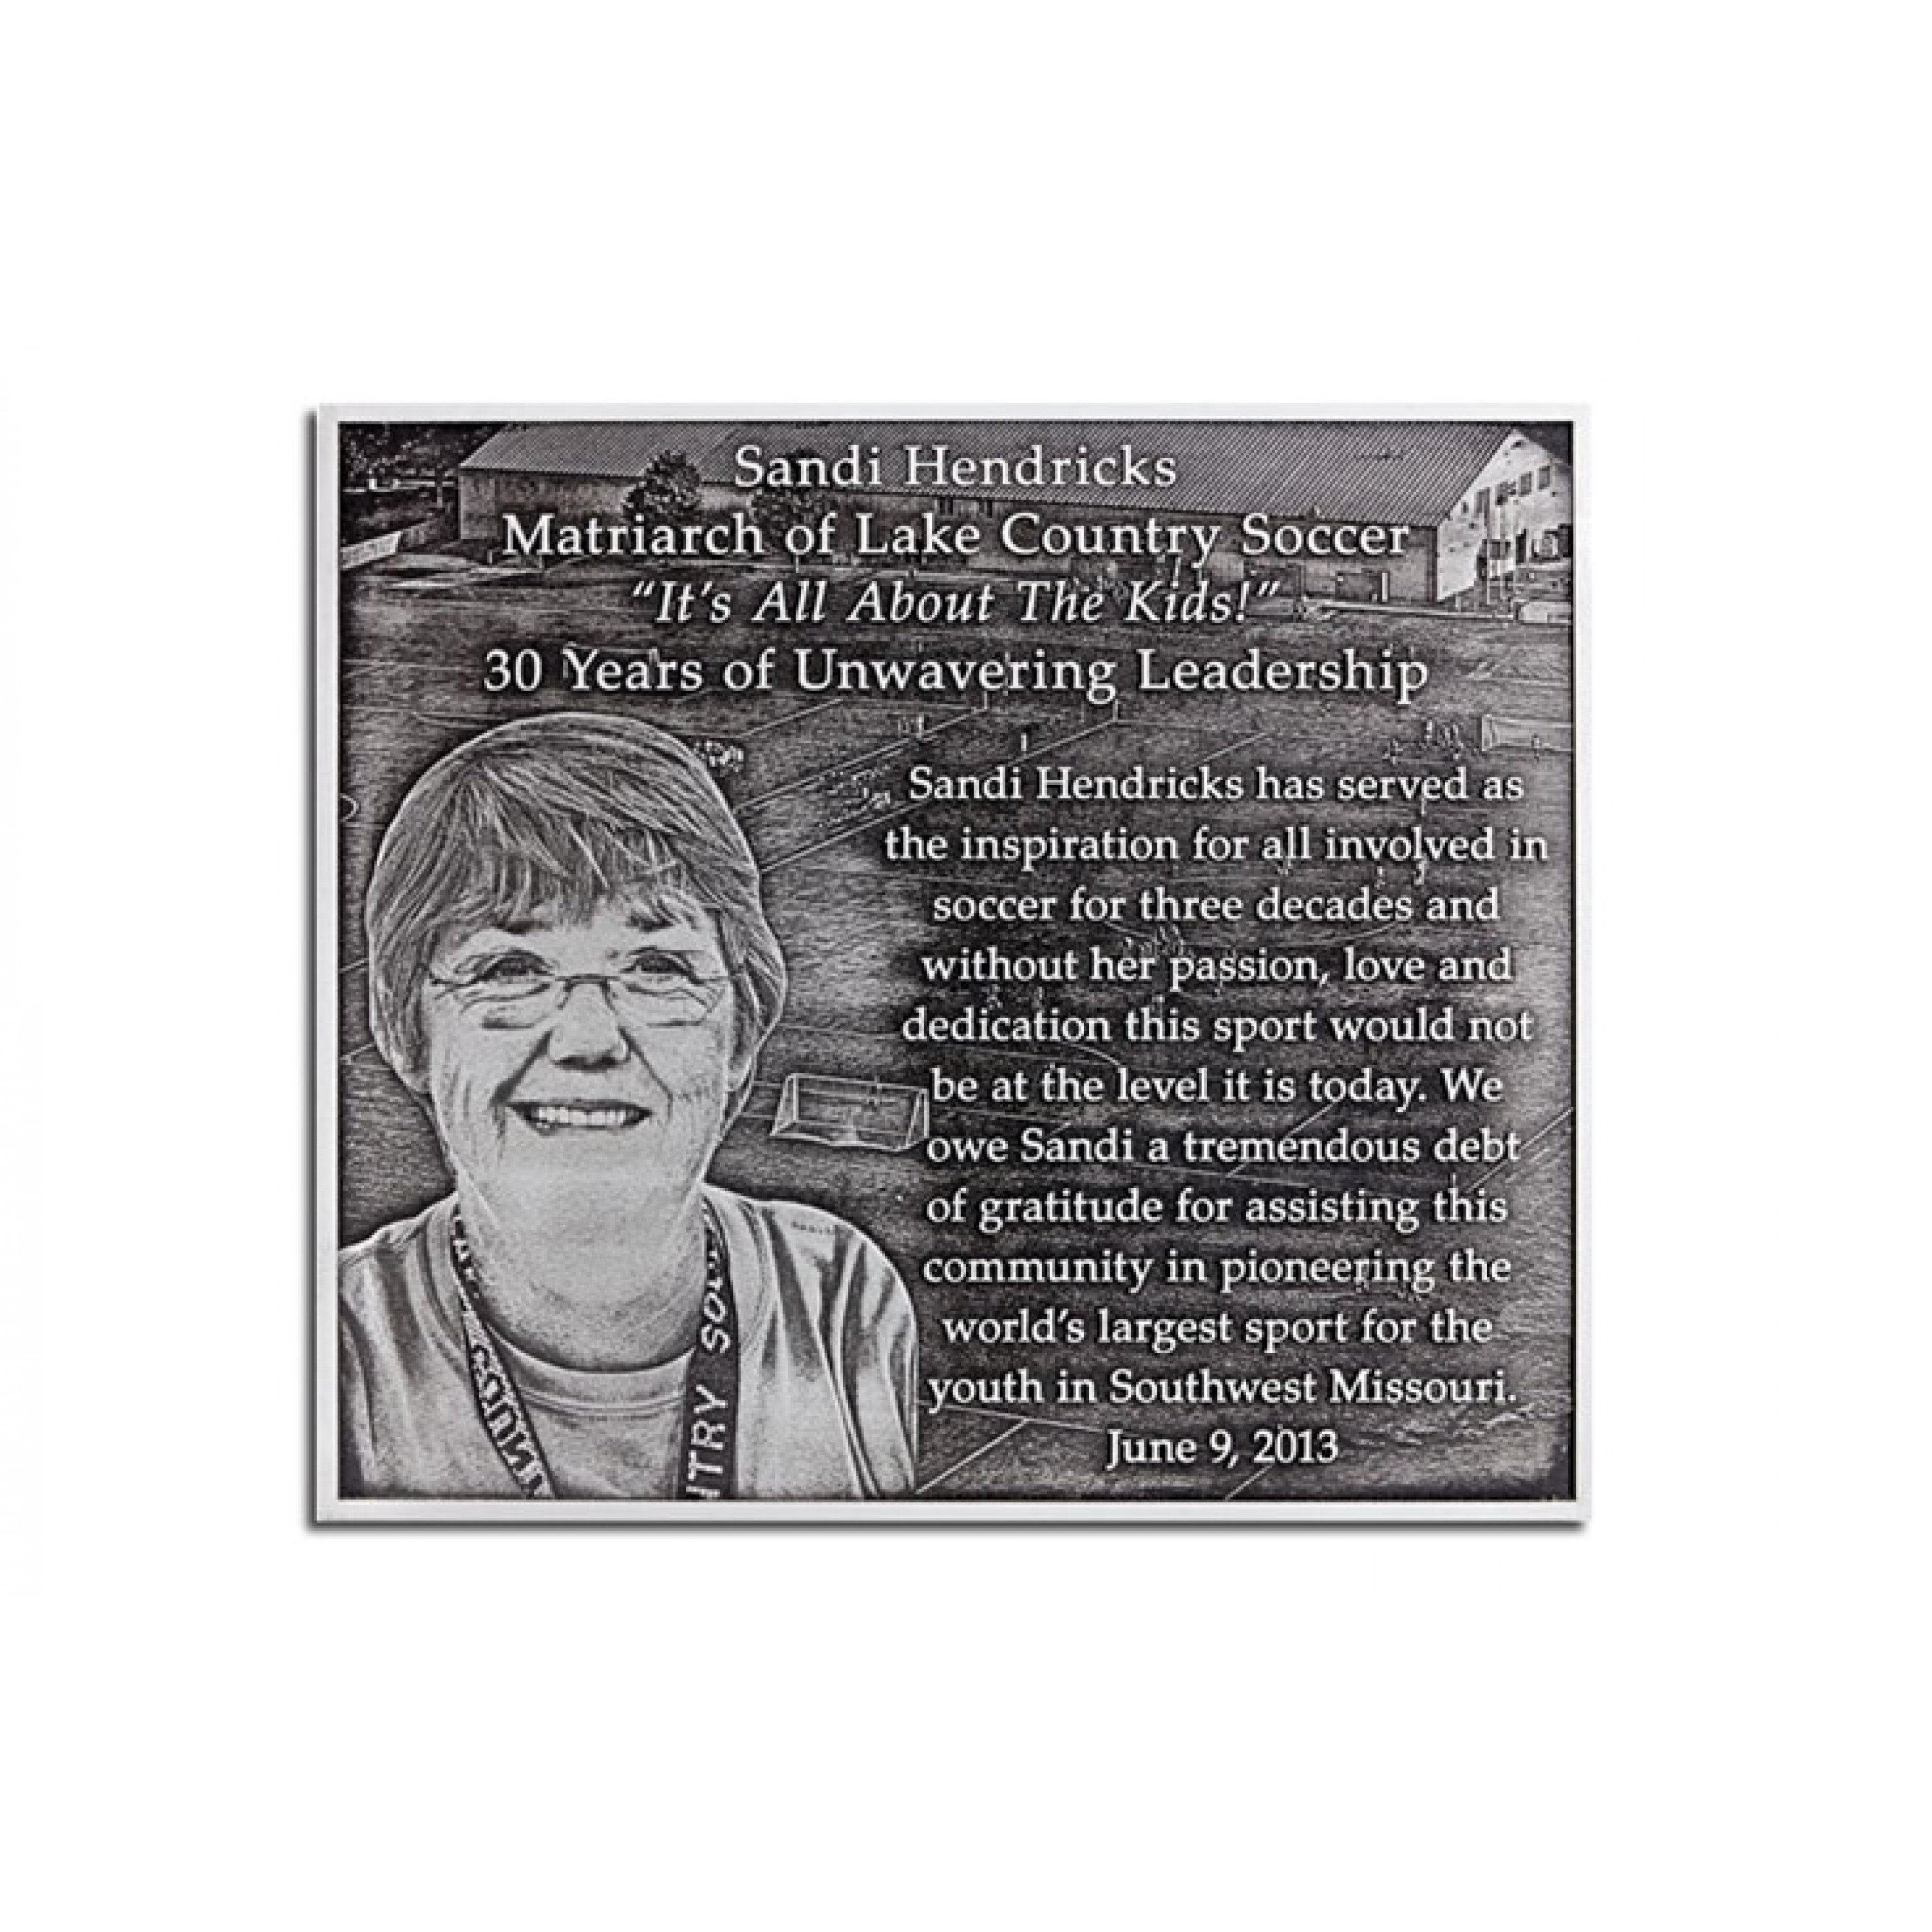 Outdoor Weatherable Plaques with Portraits (0)